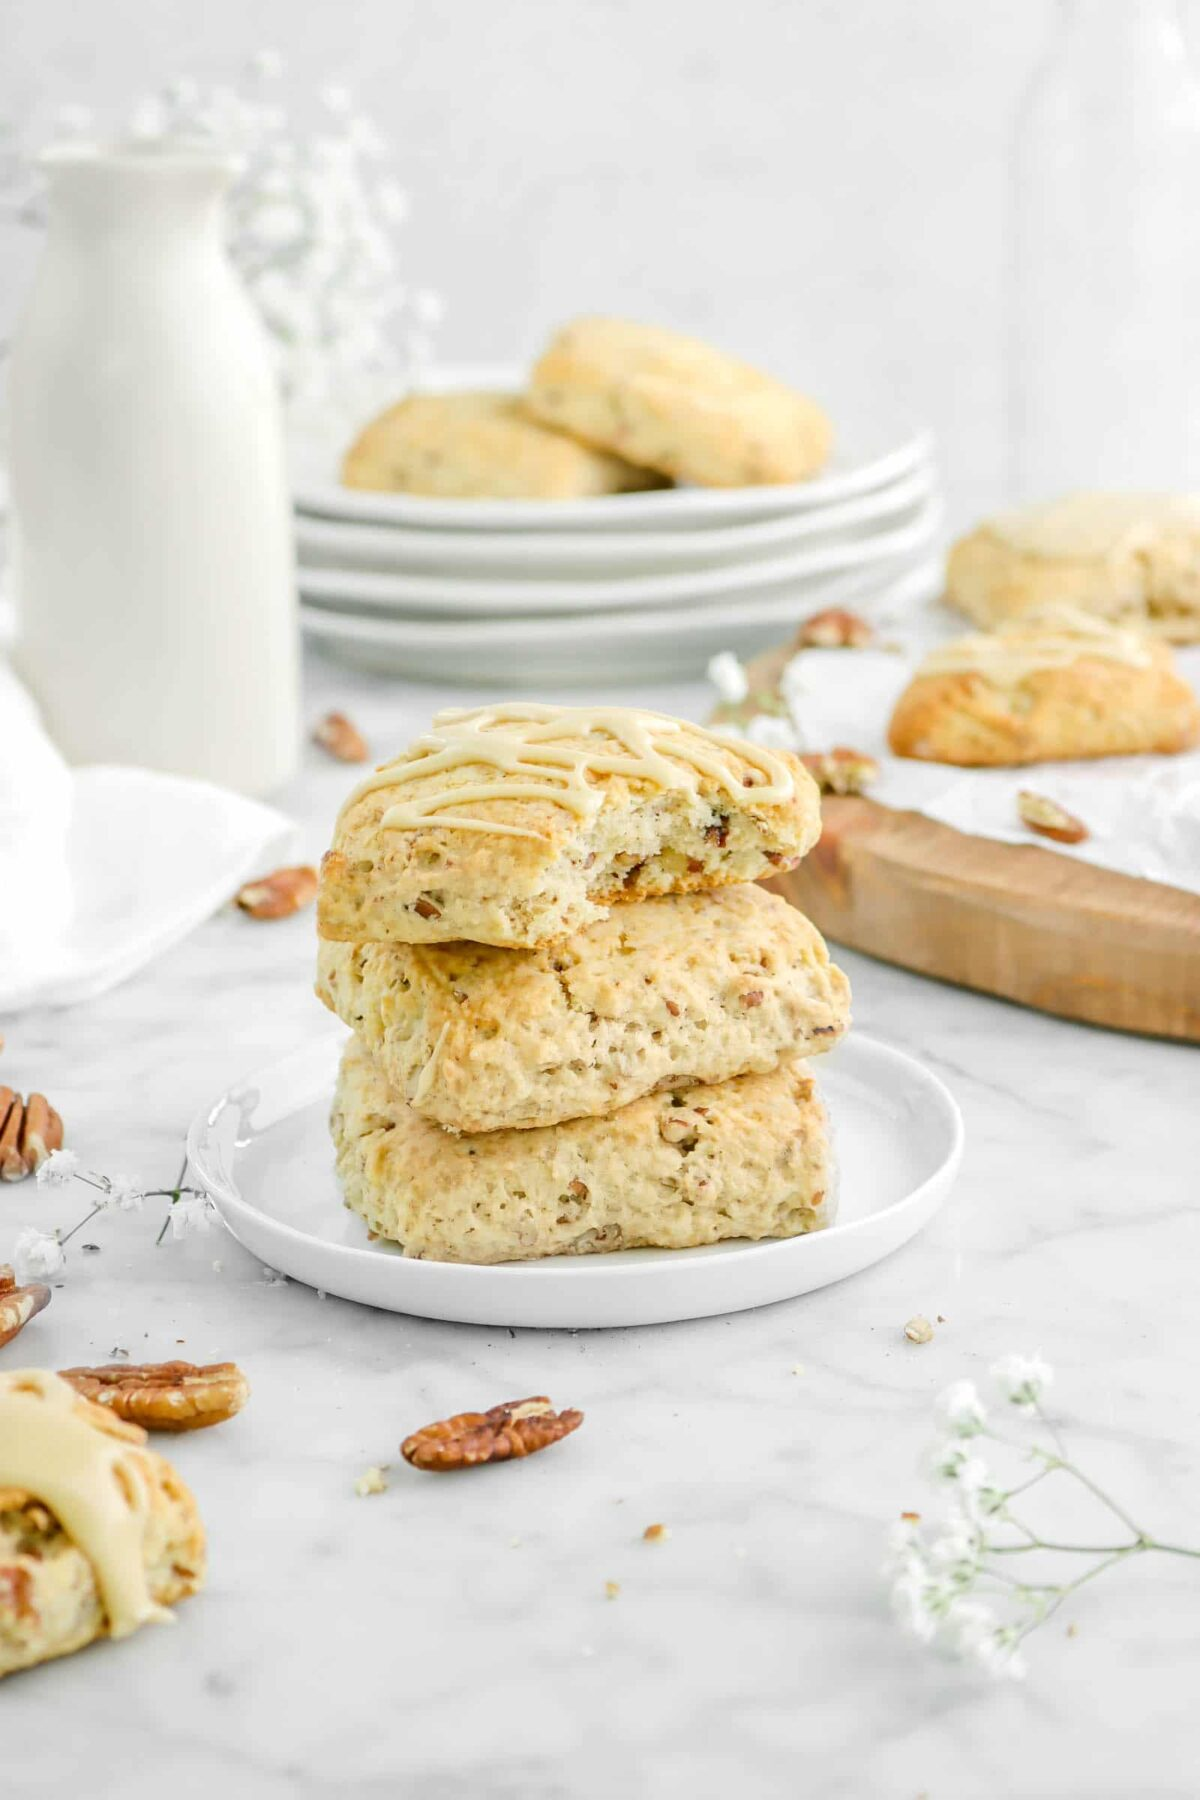 stacked scones on white plate with a bite missing from one with more scones behind, flowers, pecans, and stacked plates